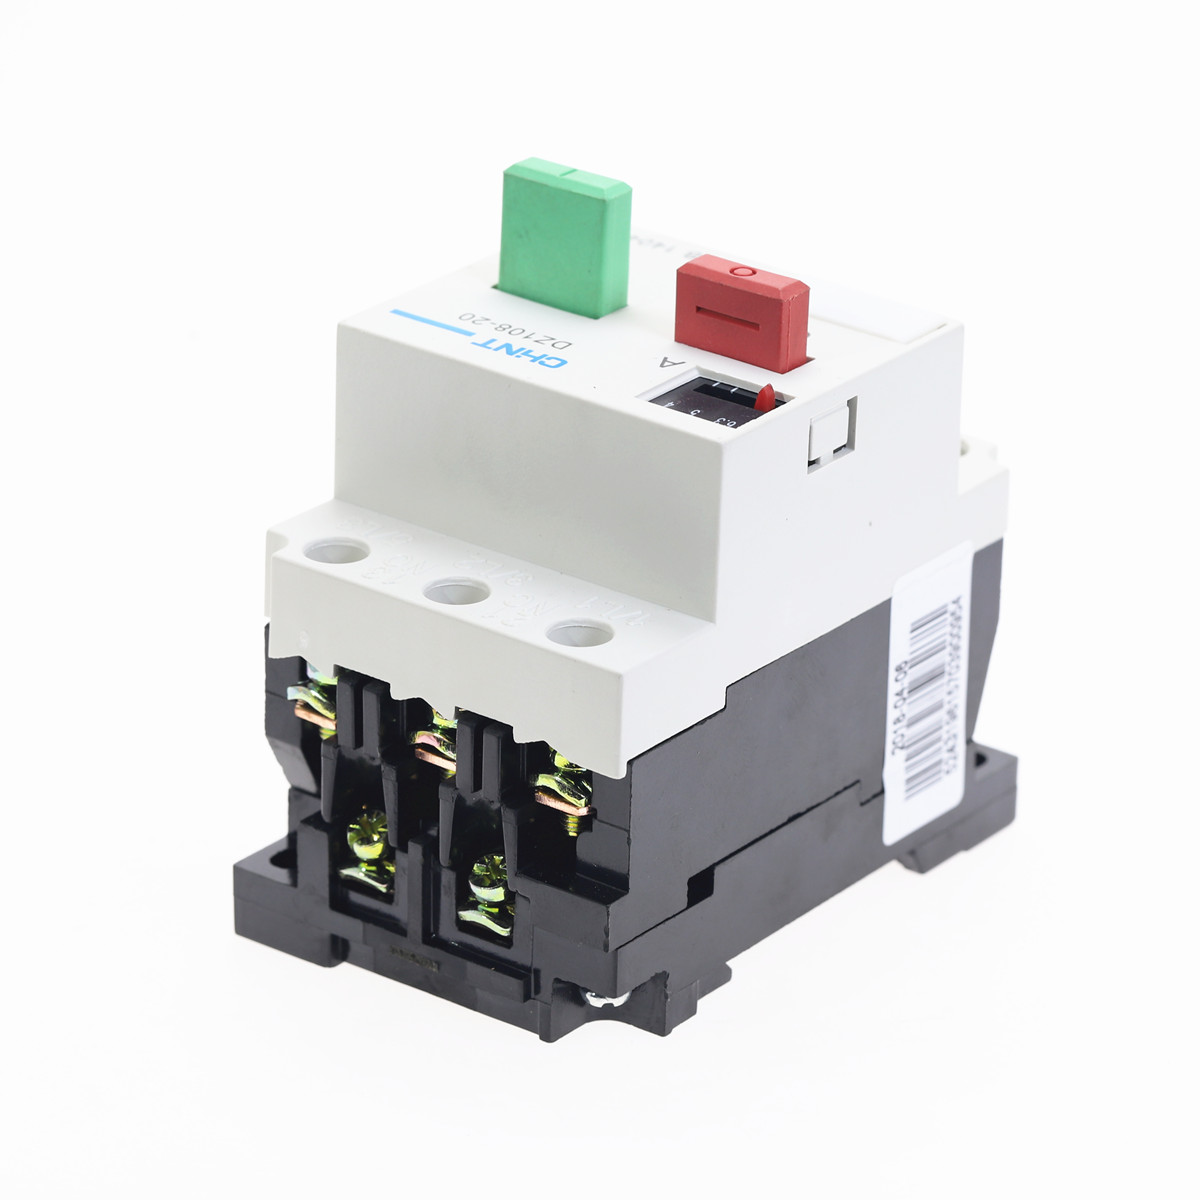 BRAND NEW DZ108-20 3VE1 6.3-10A Circut Breaker for Motor Protection 1PCS